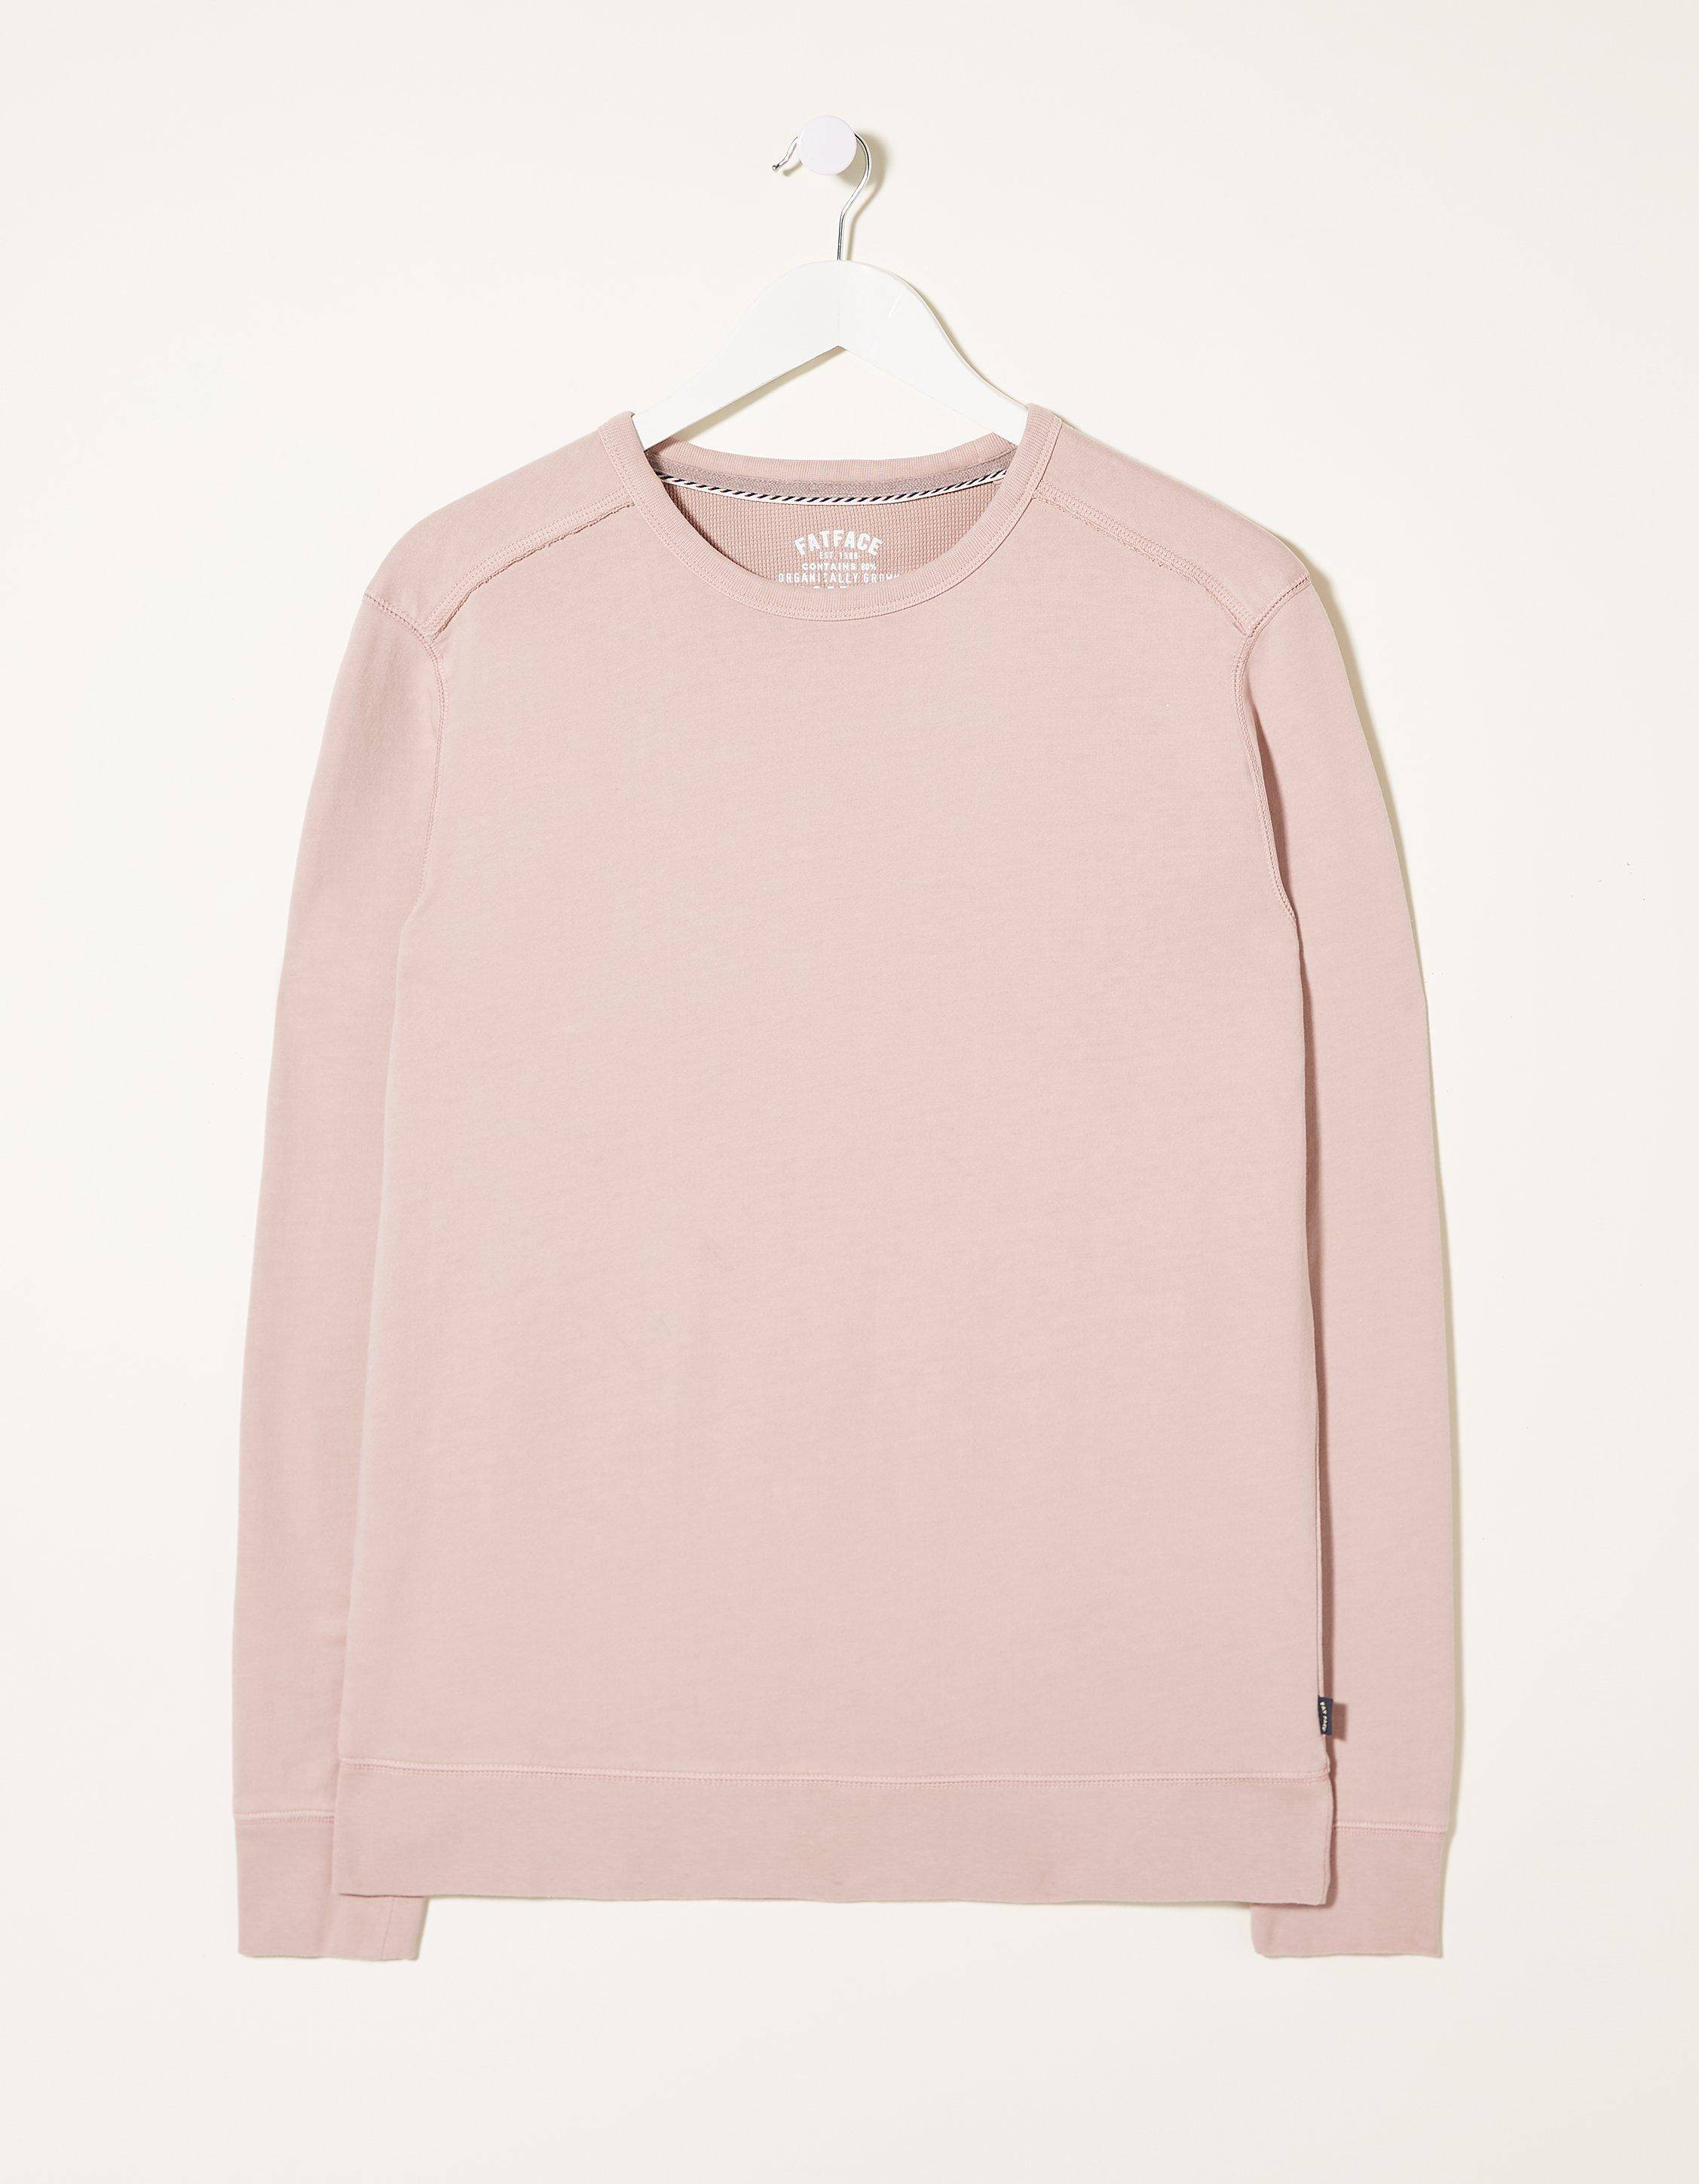 Fat Face Emsworth Crew Neck Sweat  - Size: Extra Small